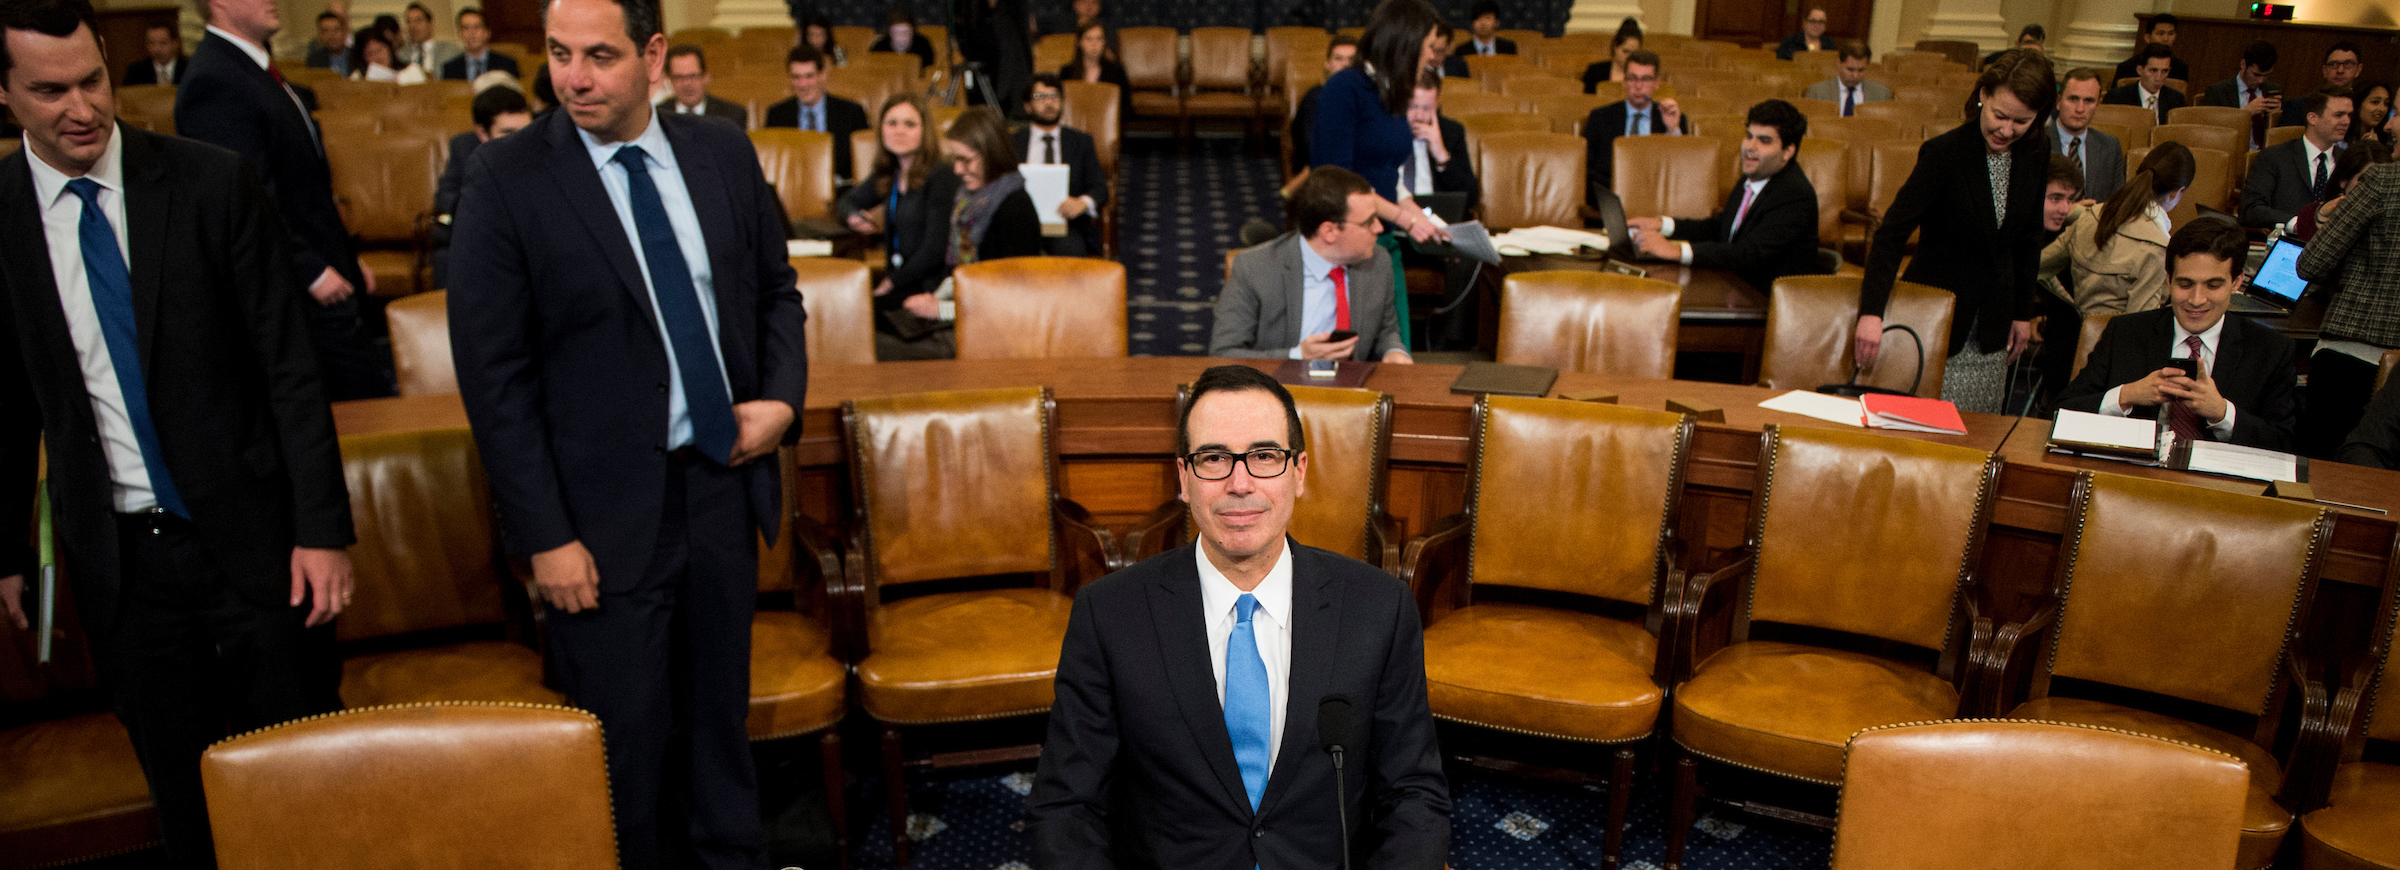 Treasury Secretary Steven Mnuchin takes his seat at the witness table before the start of the House Ways and Means Committee hearing on Trump''s budget proposals for fiscal 2018 on Wednesday. (Bill Clark/CQ Roll Call)